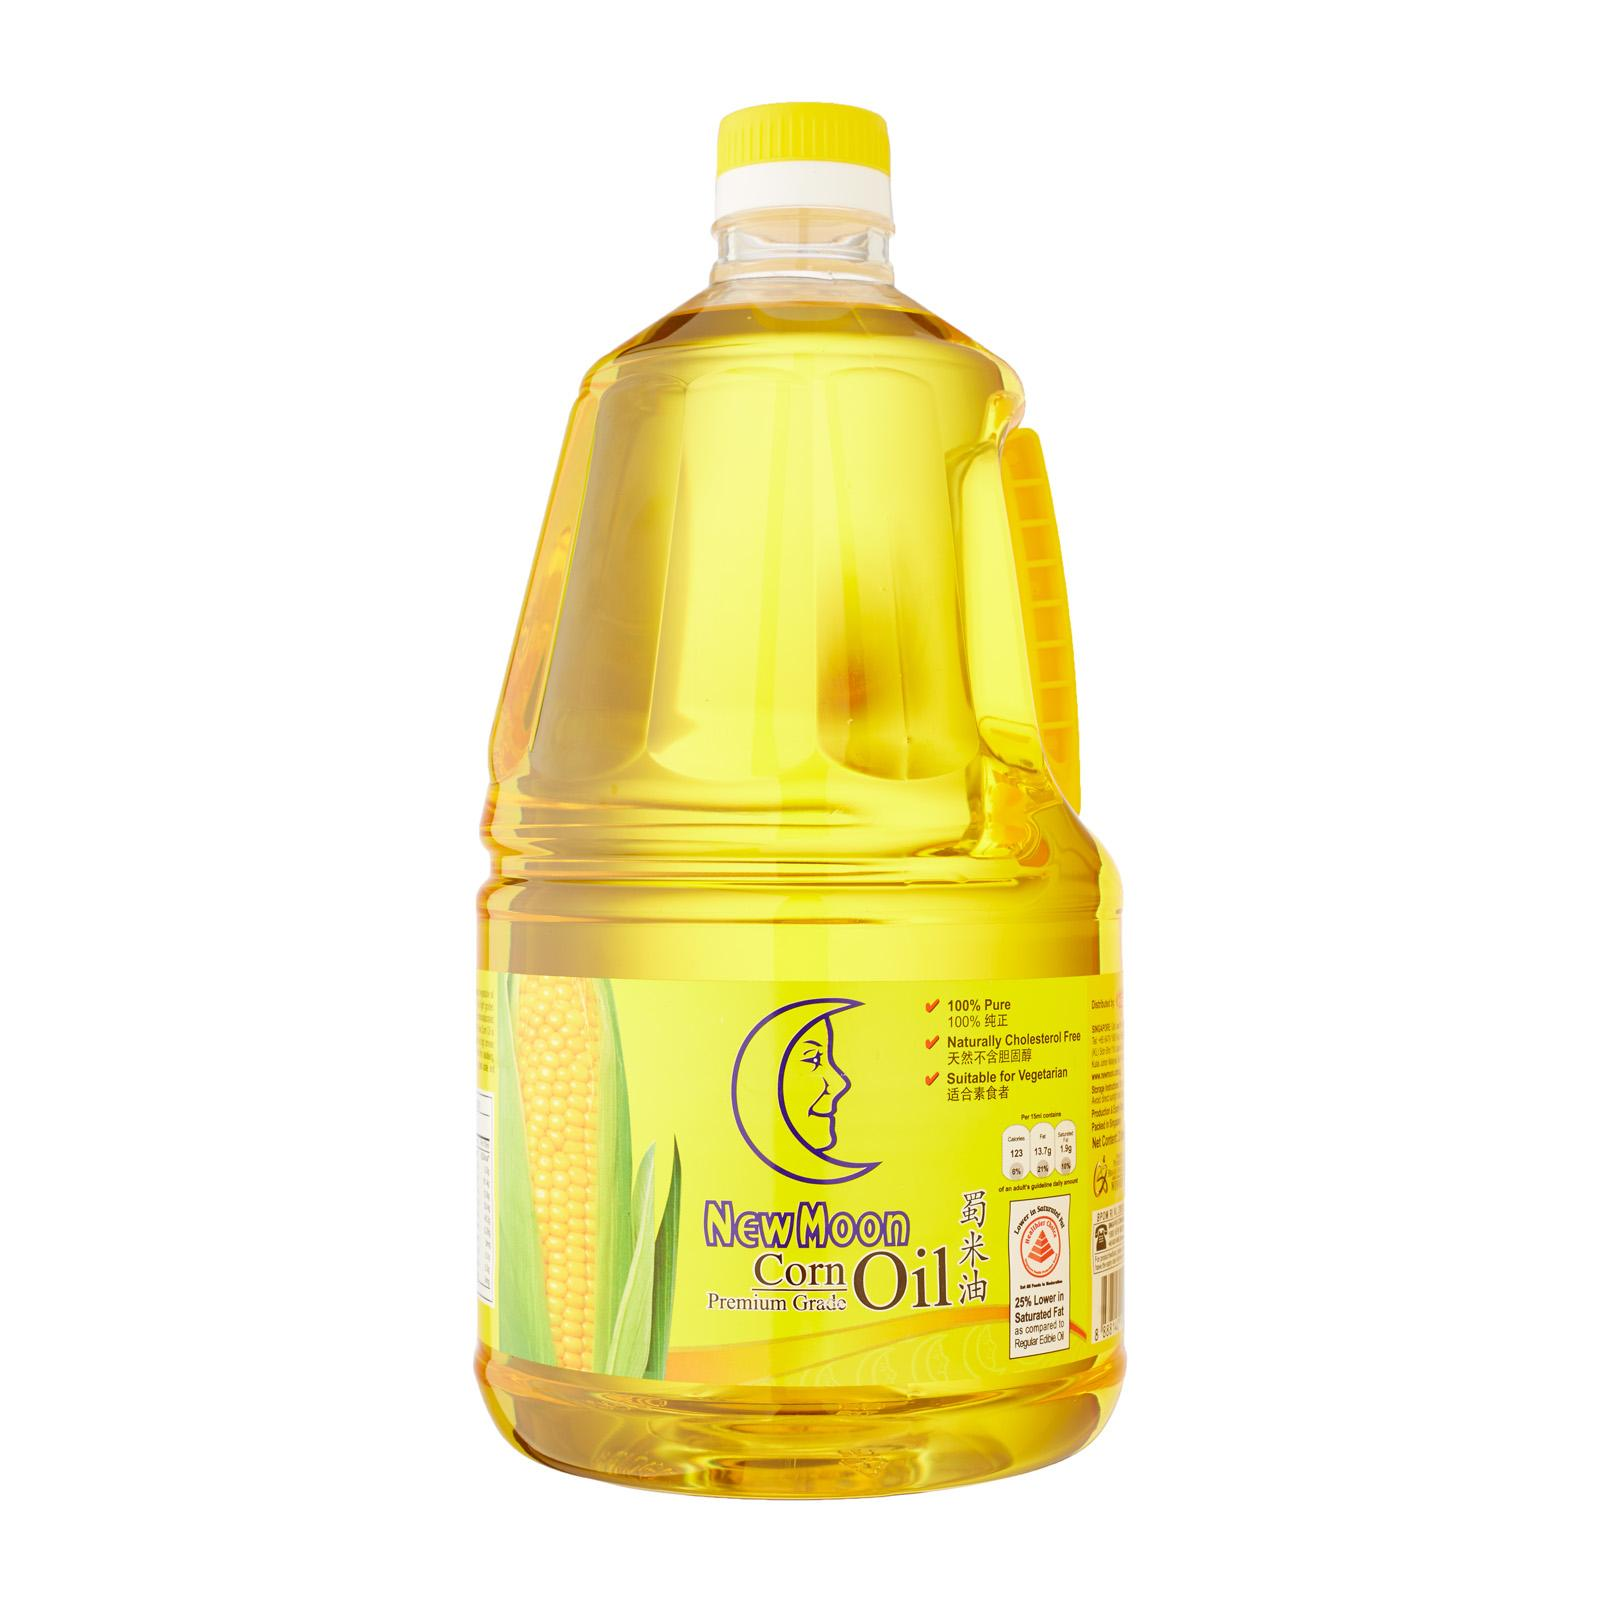 New Moon Premium Grade Corn Oil By Redmart.